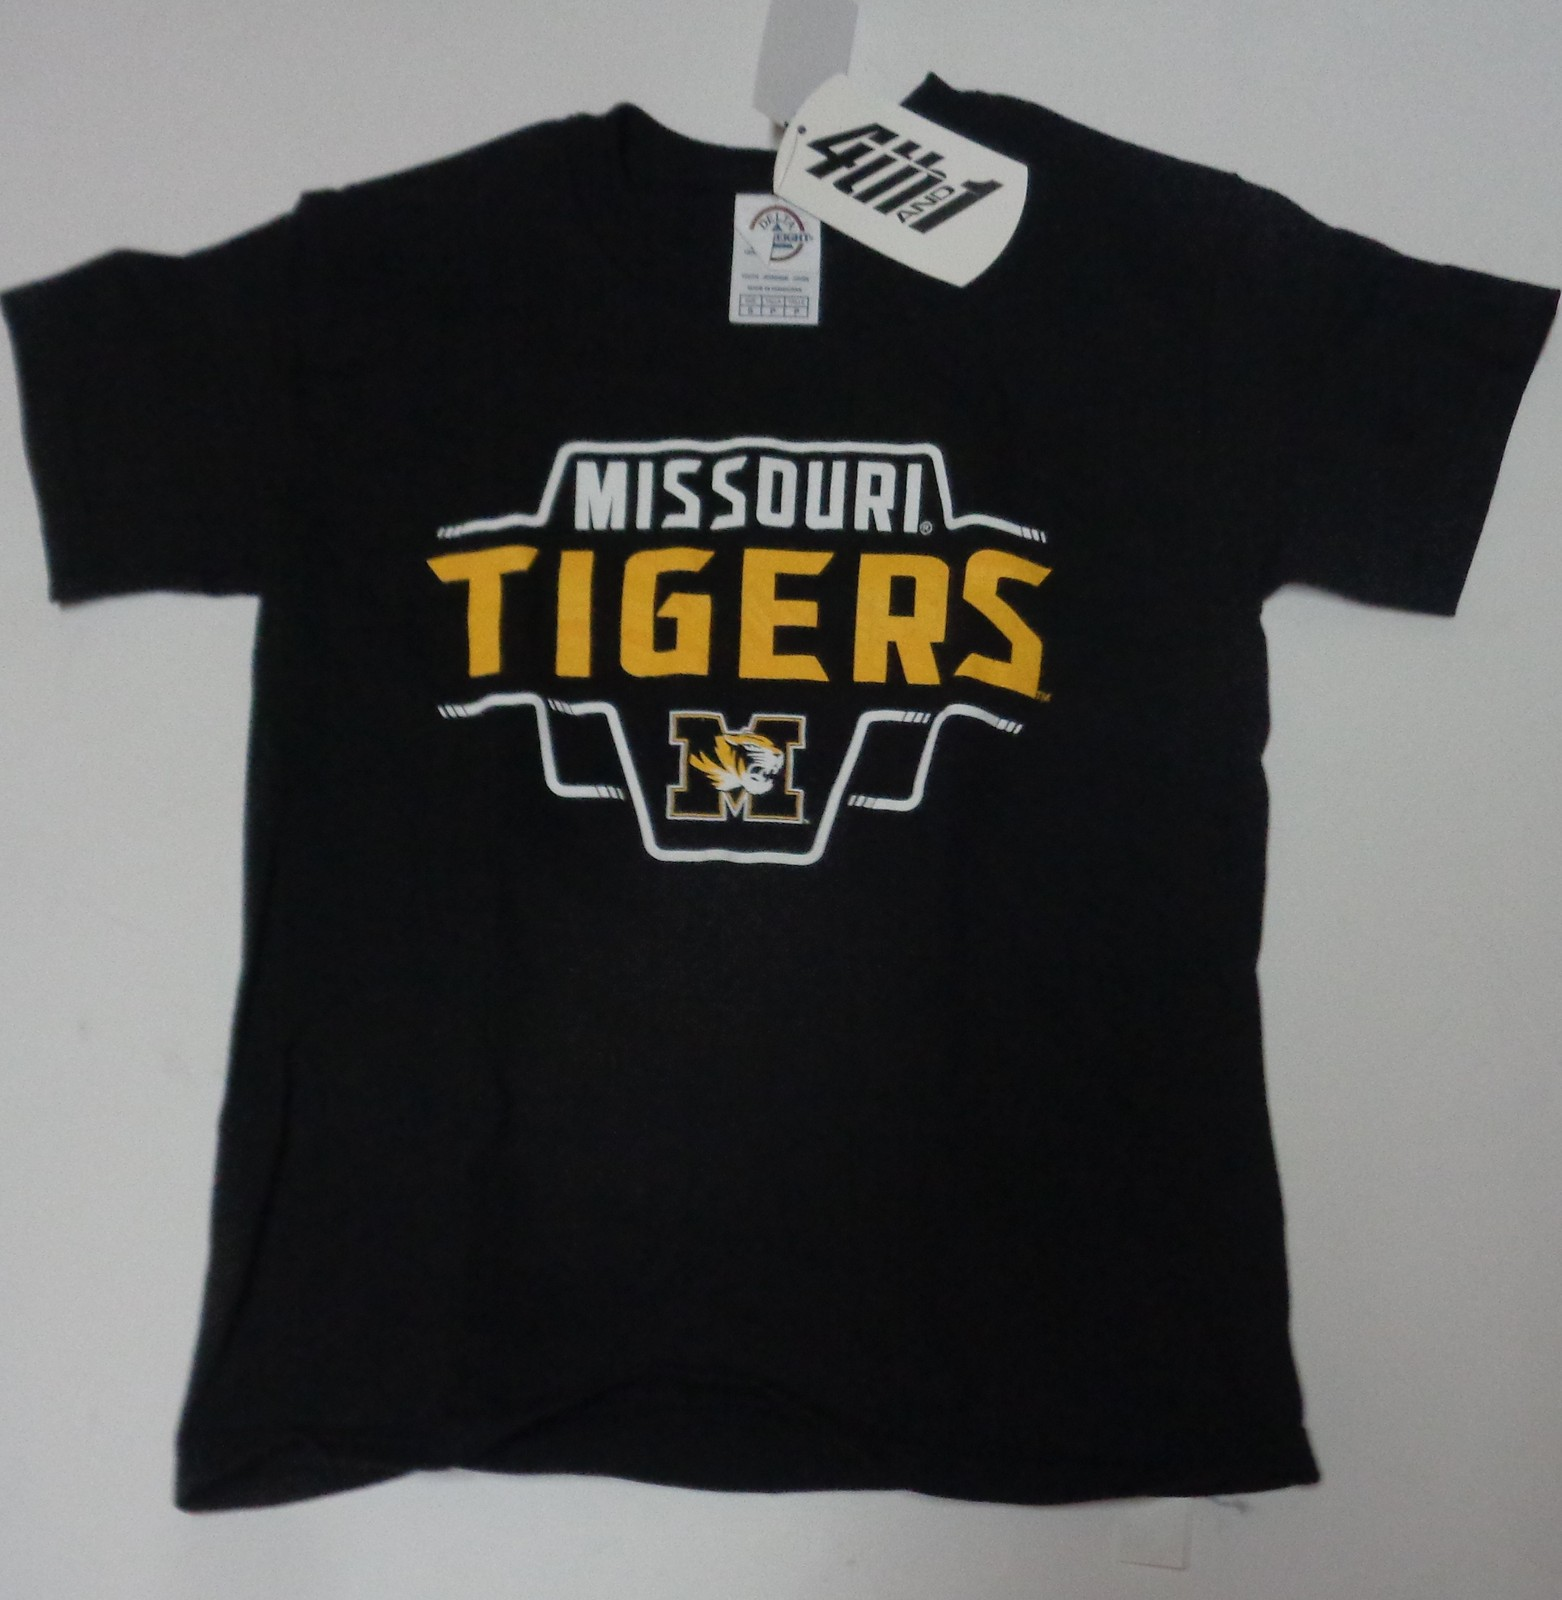 Missouri Tigers T-Shirt Kid's NWT Licensed Collegiate All Sizes University